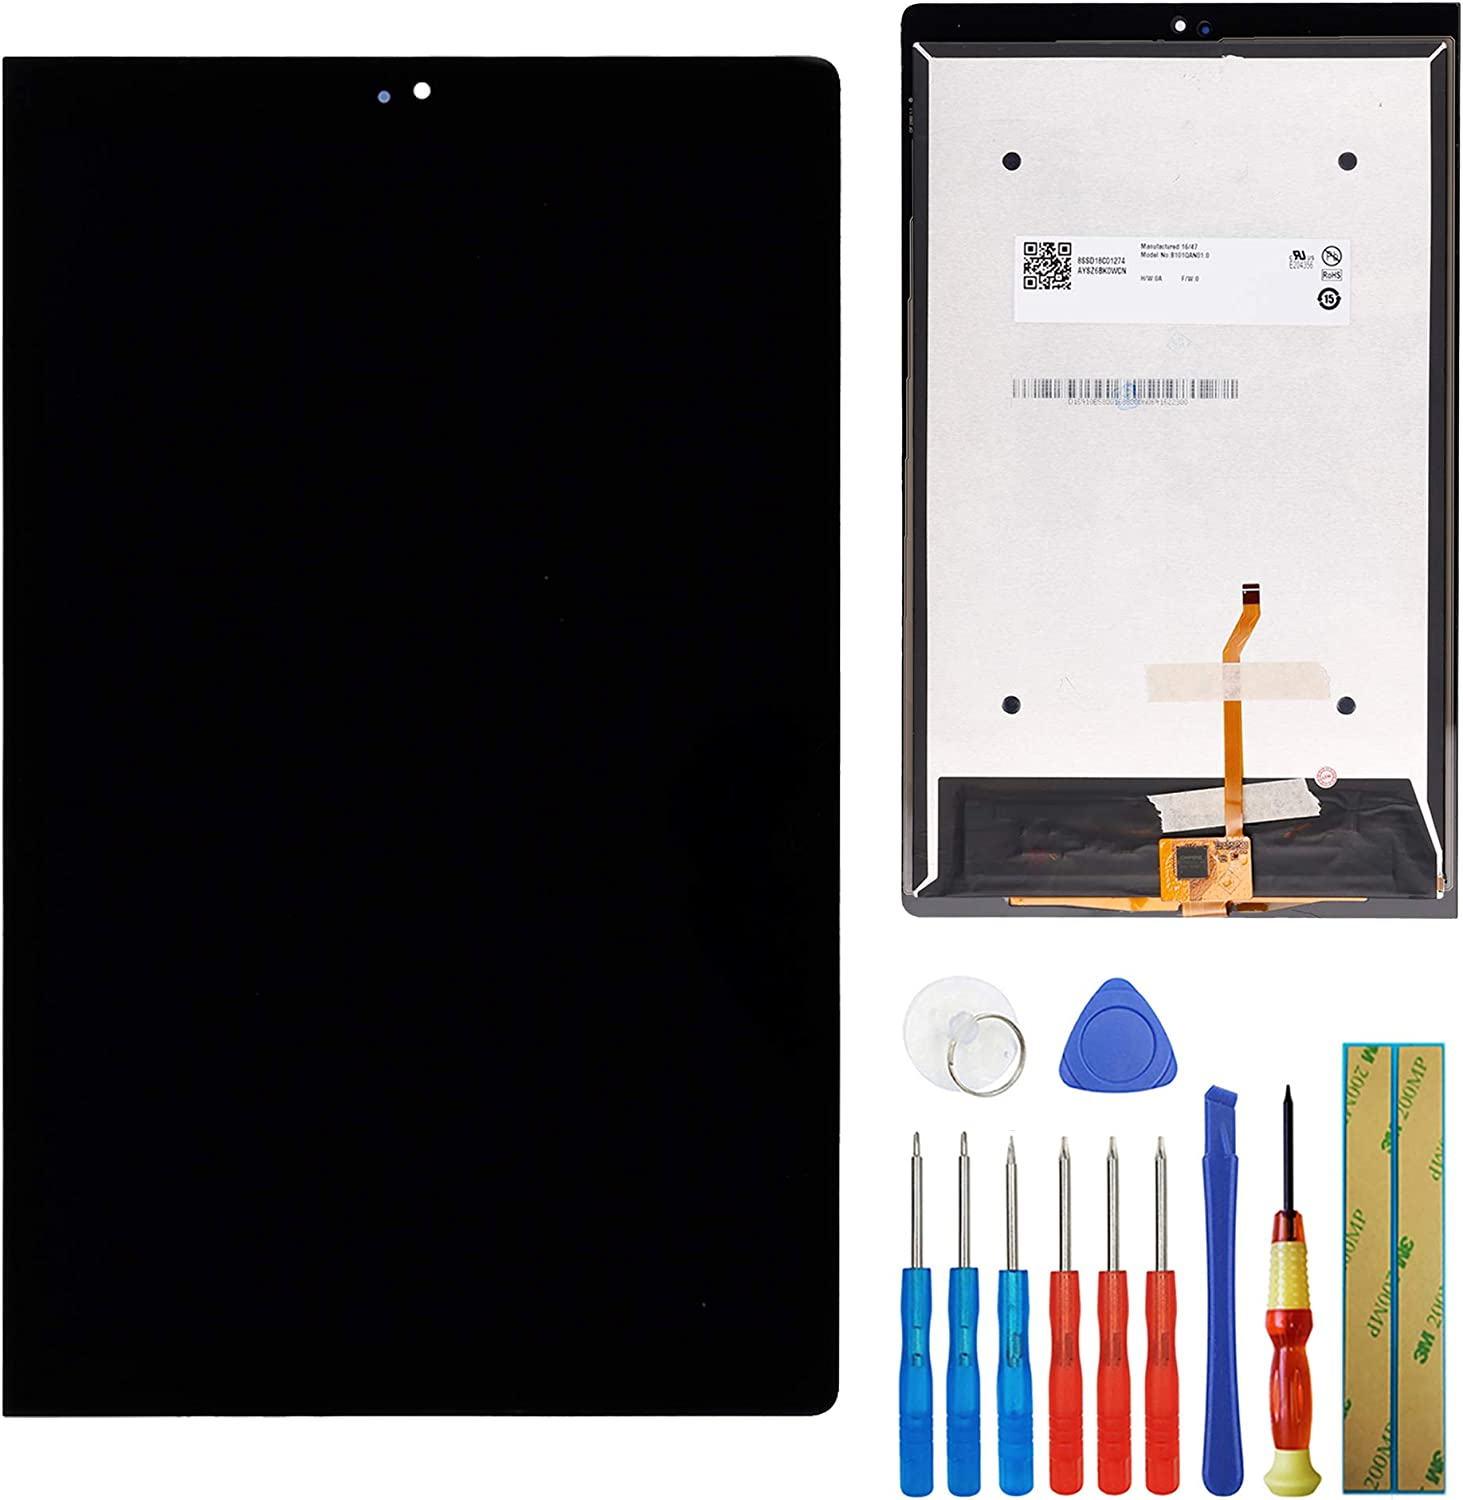 LCD Display Compatible with Lenovo Yoga Tab 3 Pro YT3-X90F WiFi 10.1inch LCD Touch Screen Display Digitizer Assembly + Tools